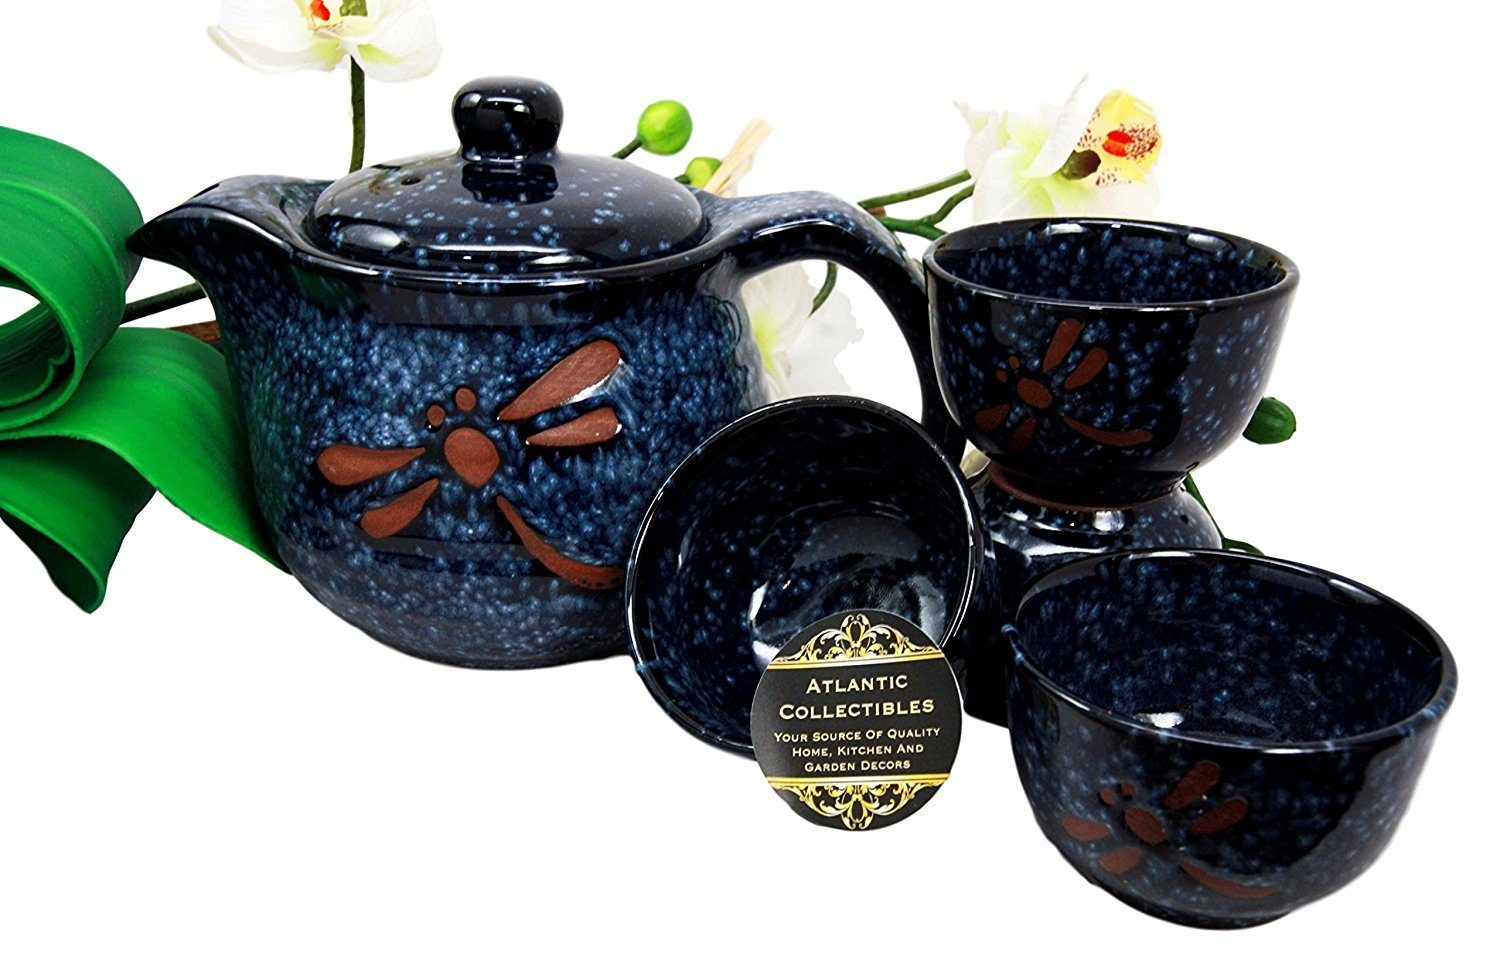 Atlantic Collectibles Japanese Tombo Dragonfly Blue Glazed Ceramic 20oz Tea Pot With Metal Strainer and Cups Set Serves 4 Beautifully Packaged in Gift Box COMINHKPR133740